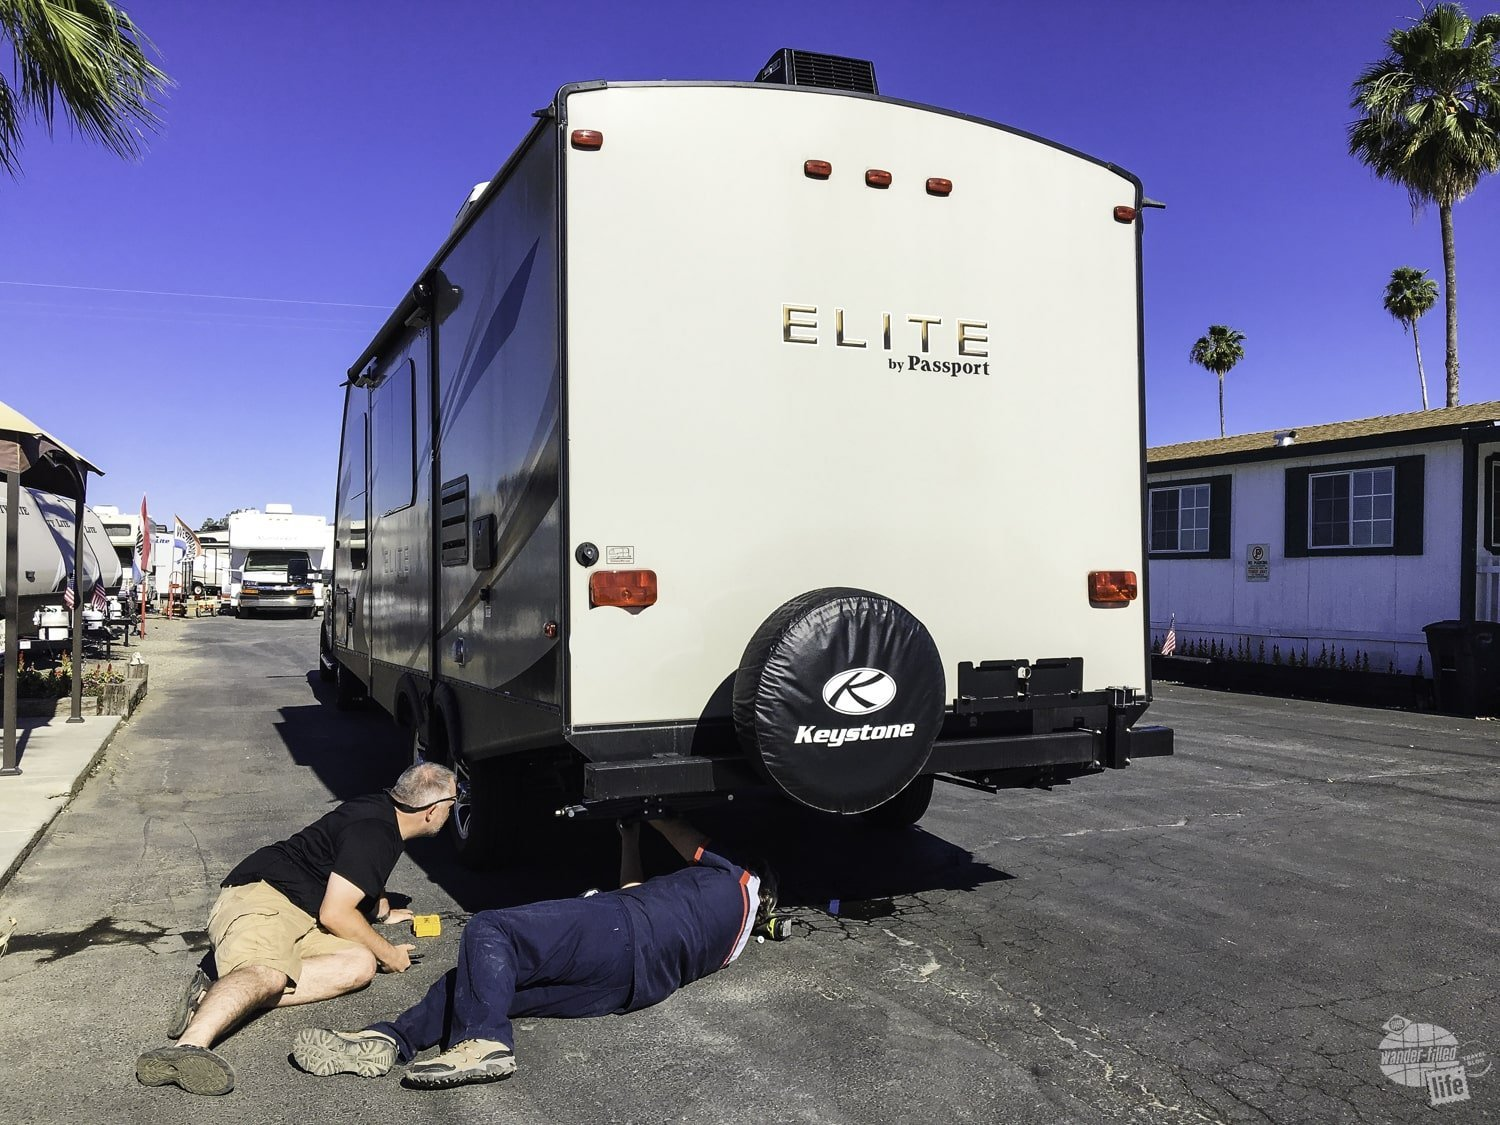 Grant assisting James while he provides RV service.